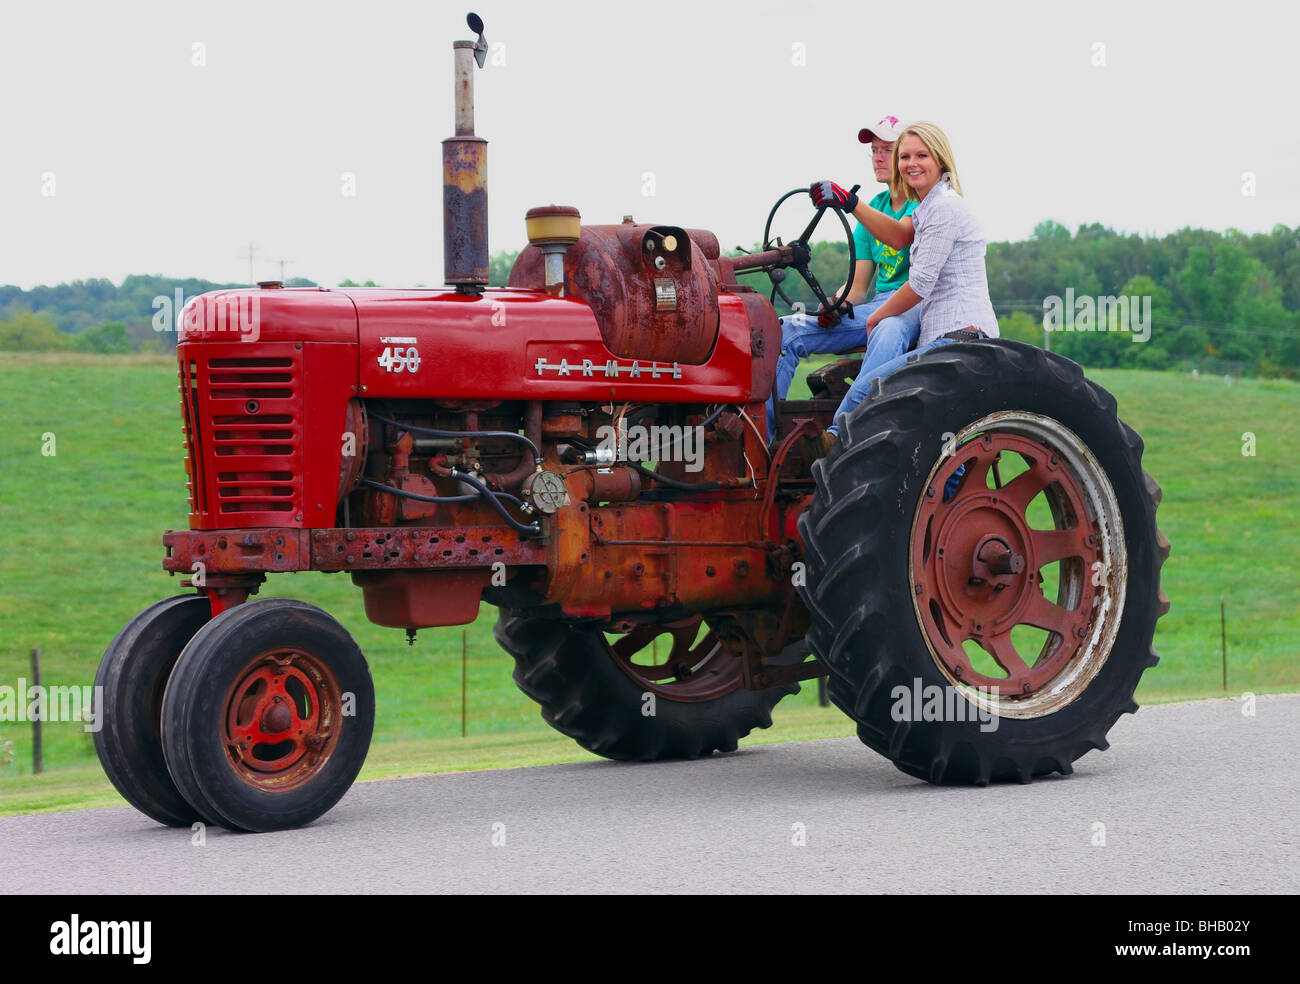 Guy On Tractor : Farmall stock photos images alamy